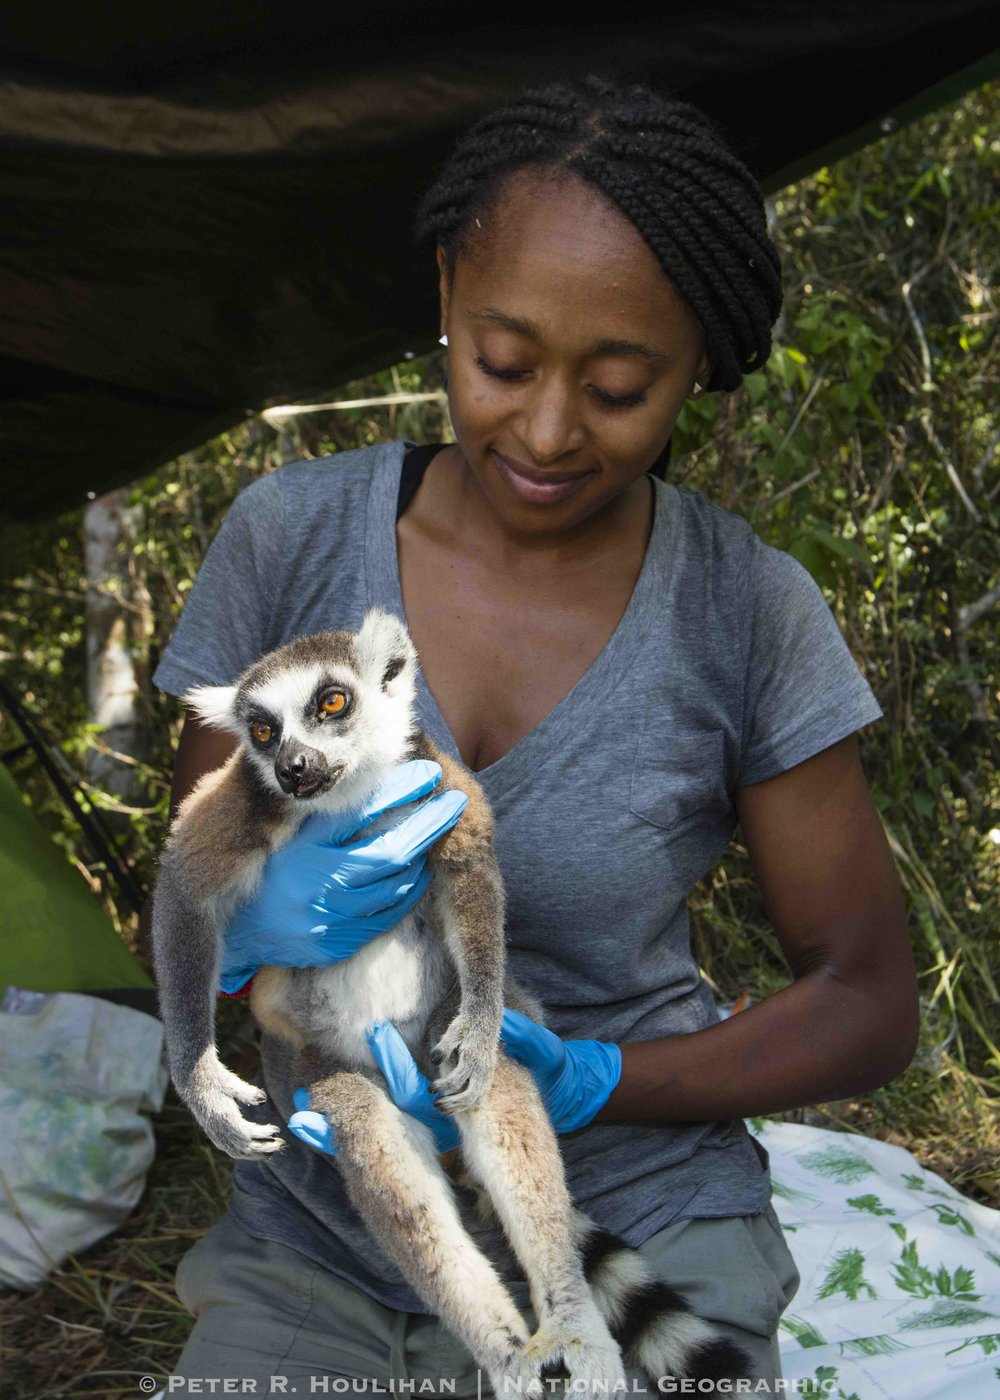 Behavior and Ecology of Ring-tailed lemurs - Ivohibory Forest, Madagascar